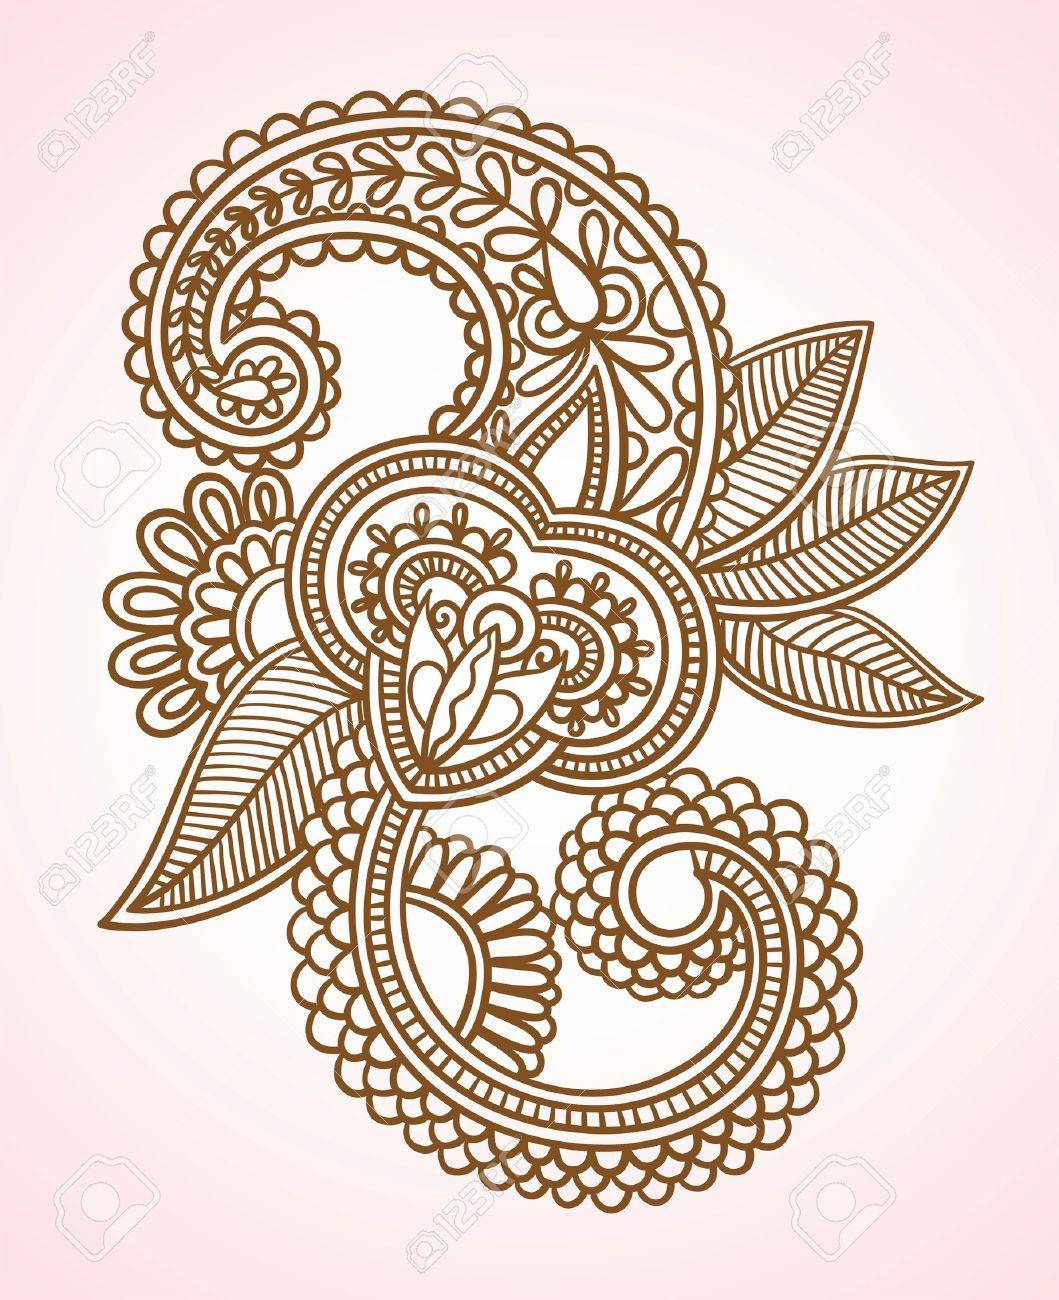 Stock Vector Illustration: Hand-Drawn Abstract Henna Mendie Flowers Doodle Vector Illustration Design Element Stock Vector - 11188935